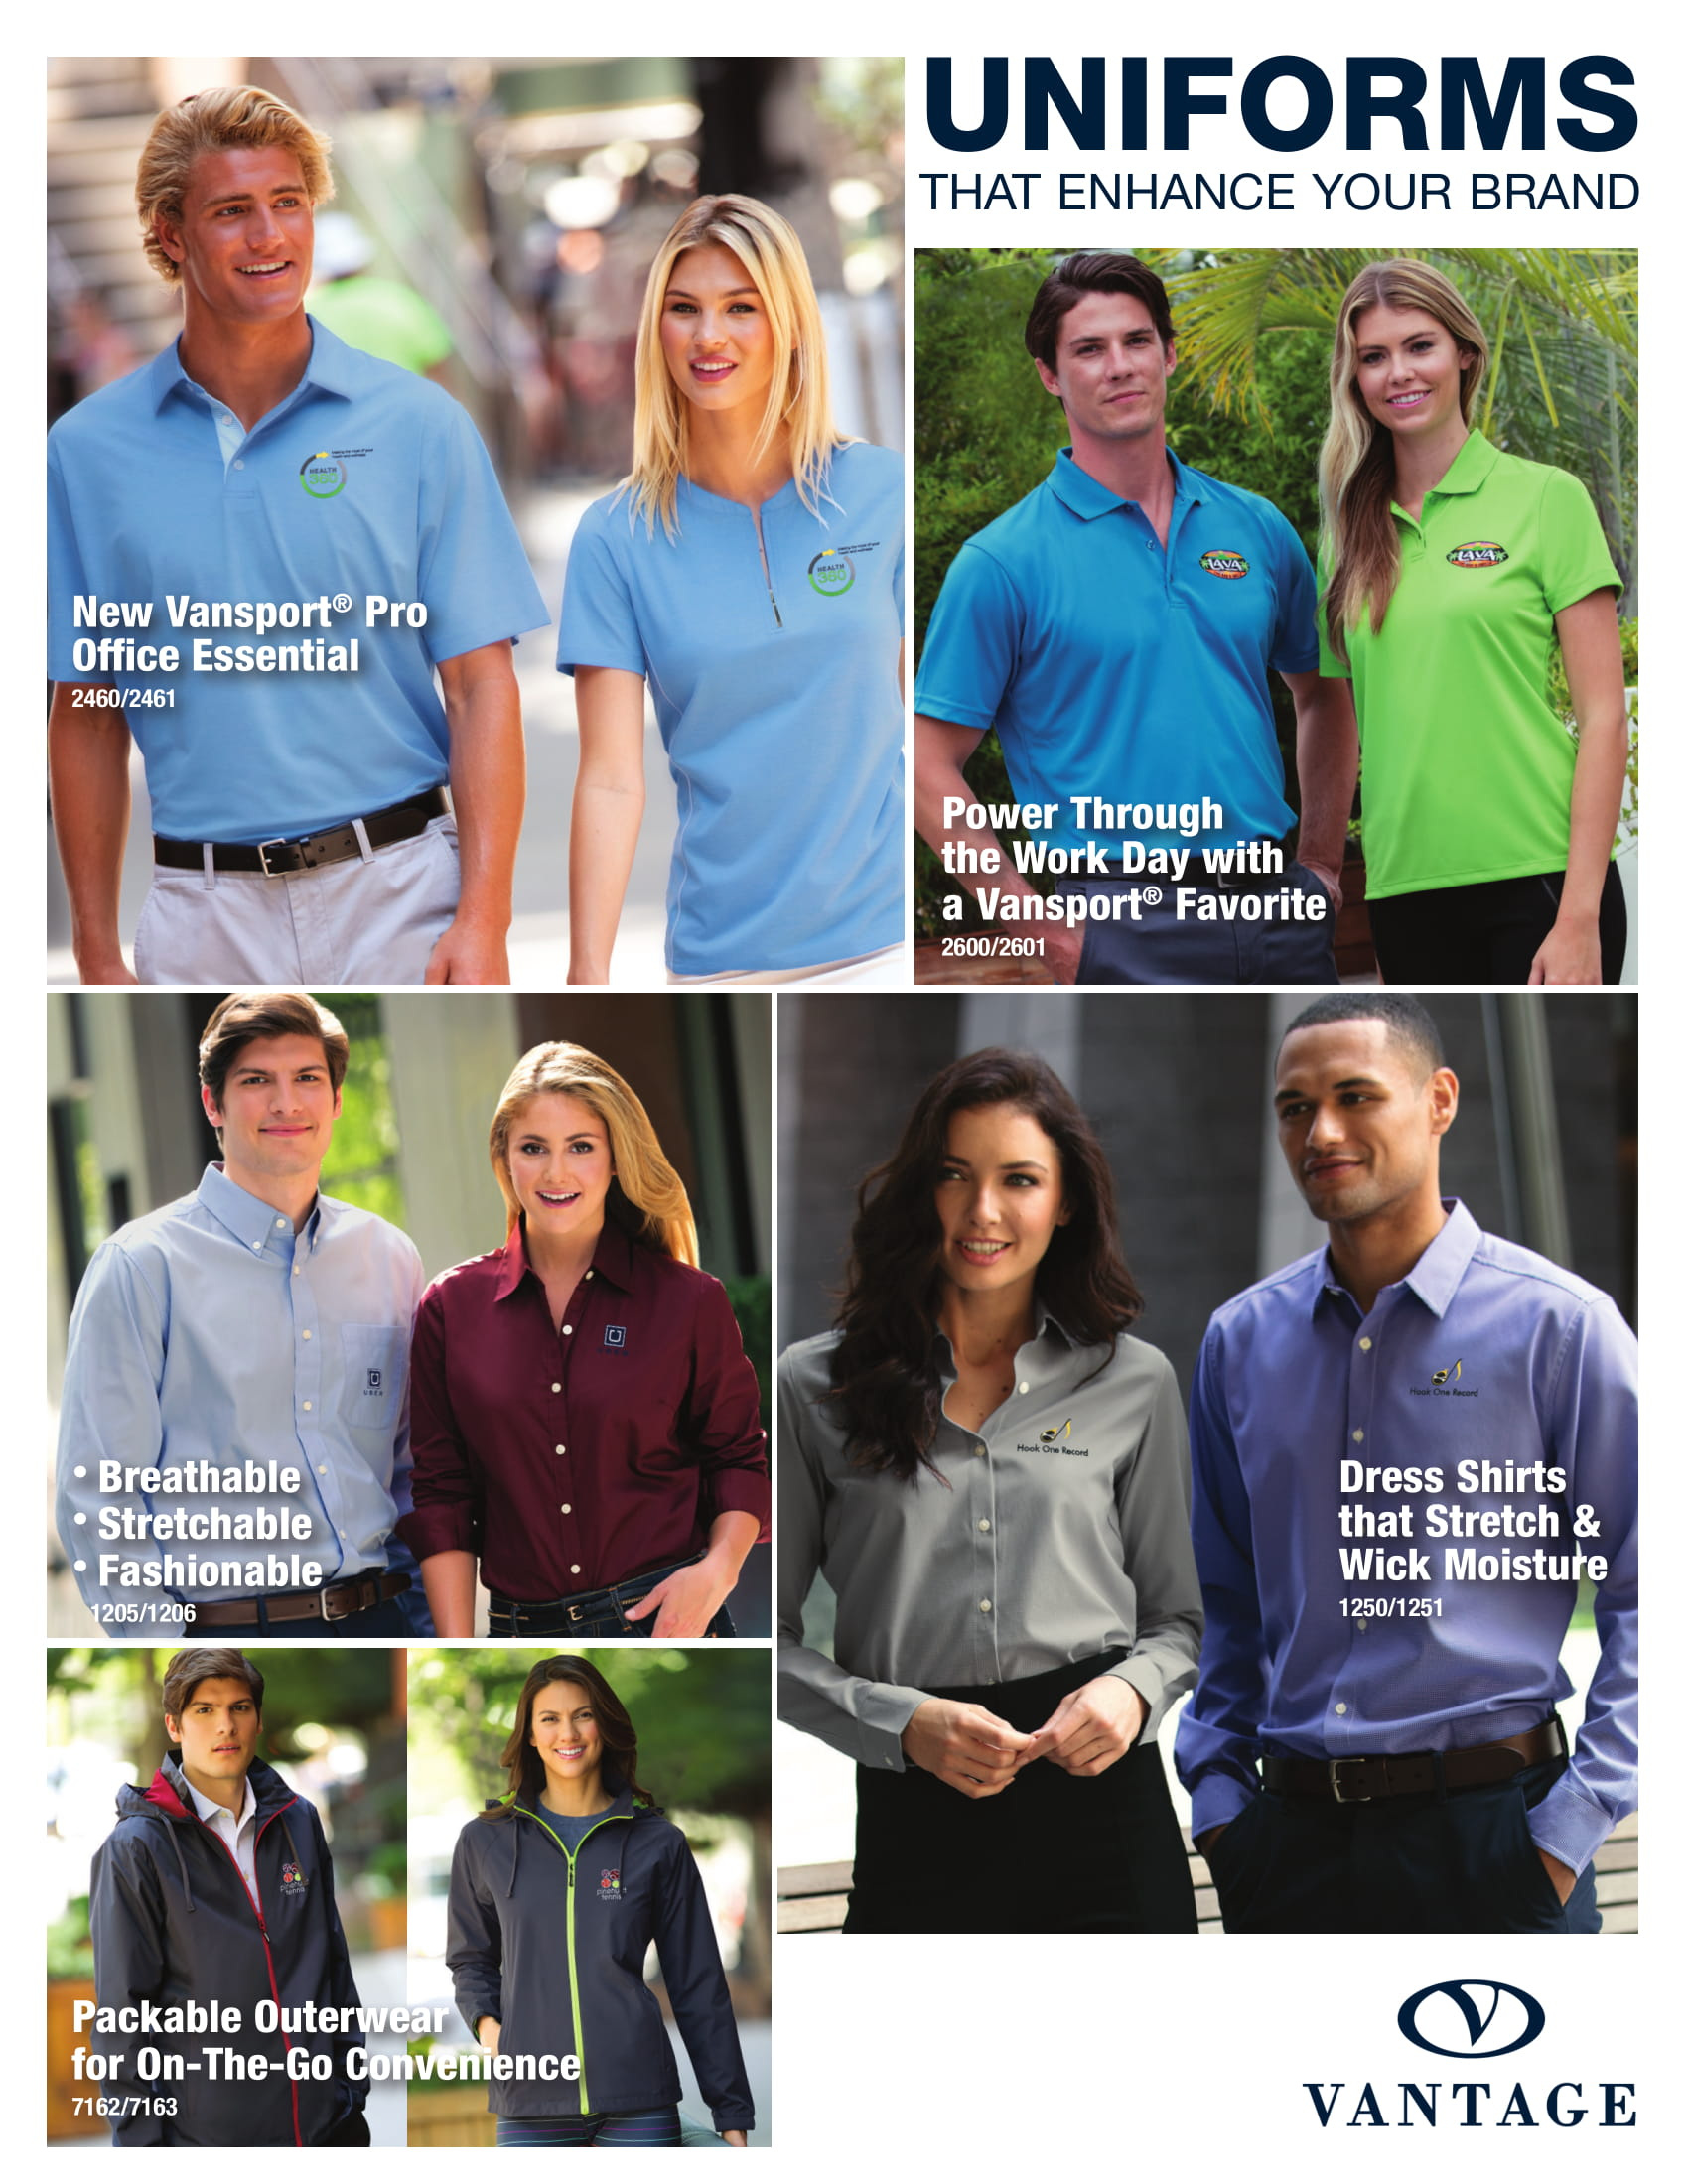 Uniforms That Enhances Your Brand